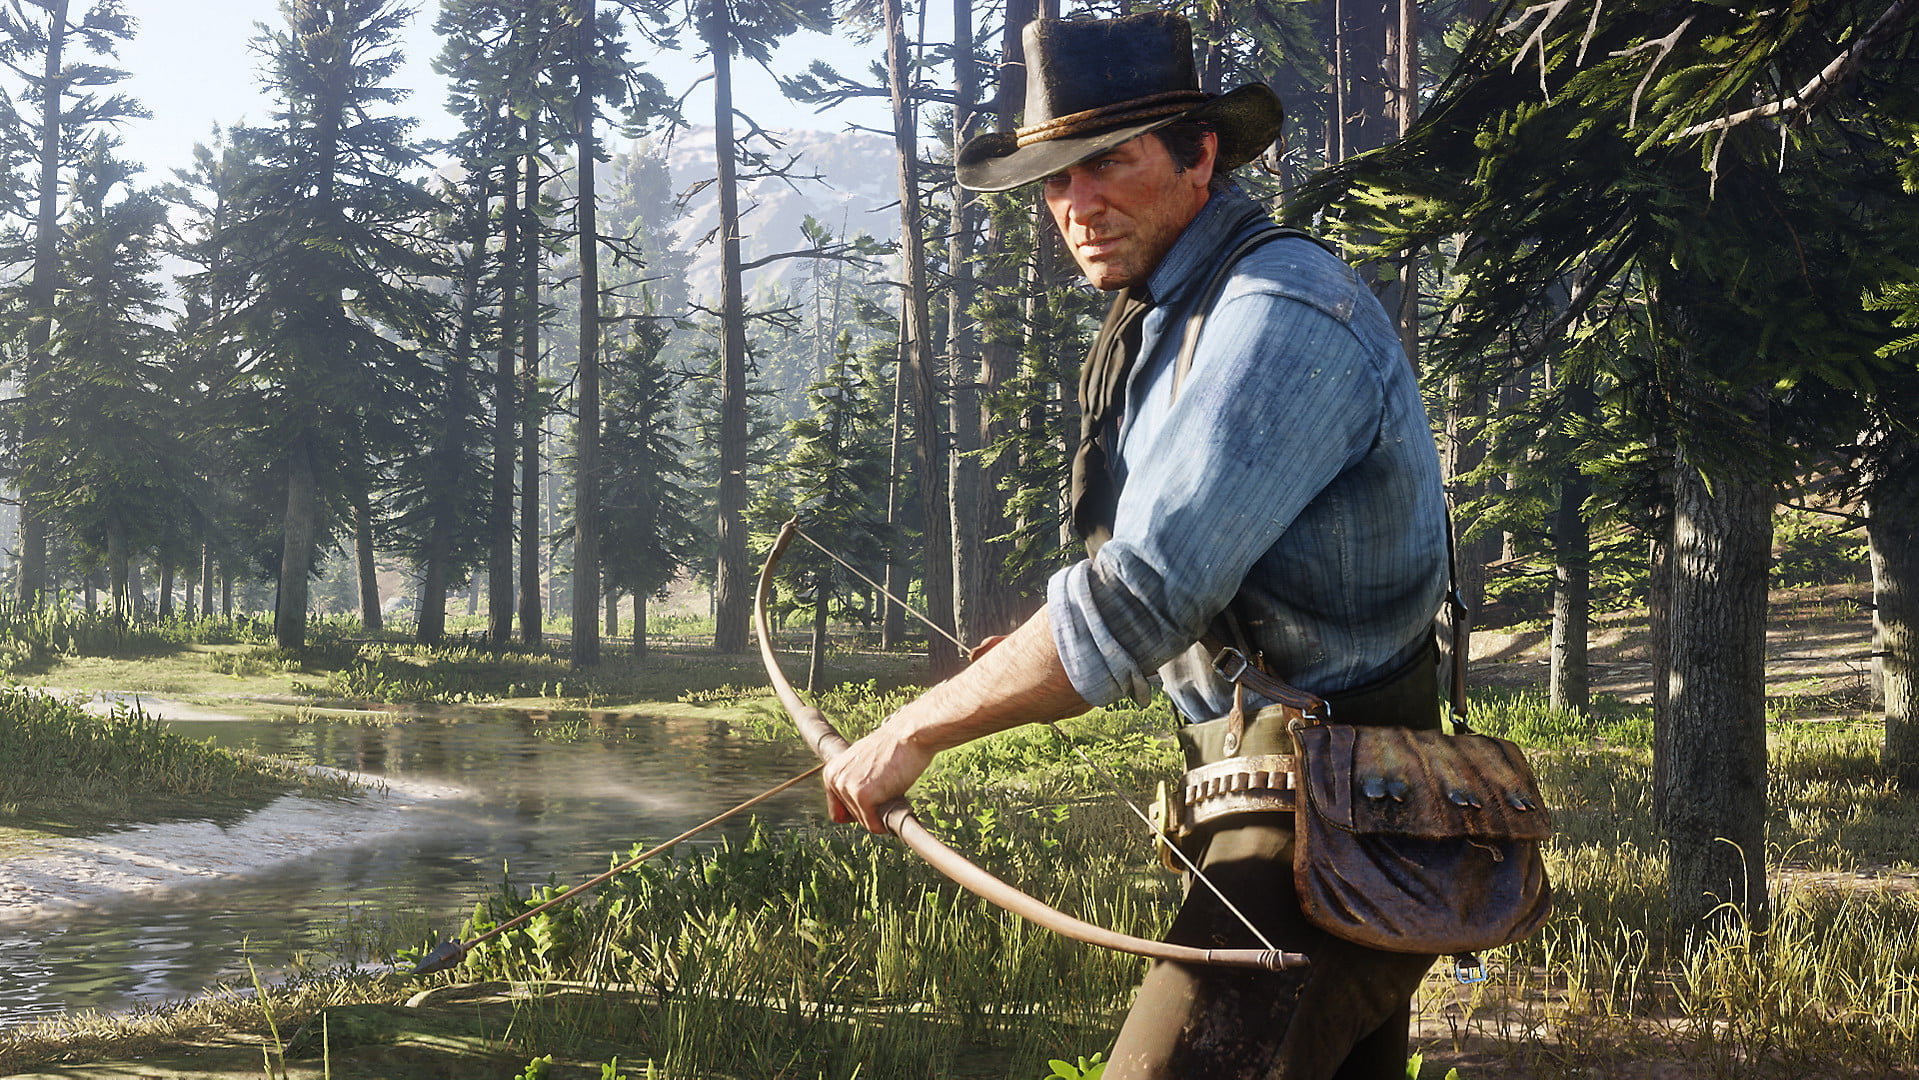 Get $100 Off an Xbox When You Buy Red Dead Redemption 2